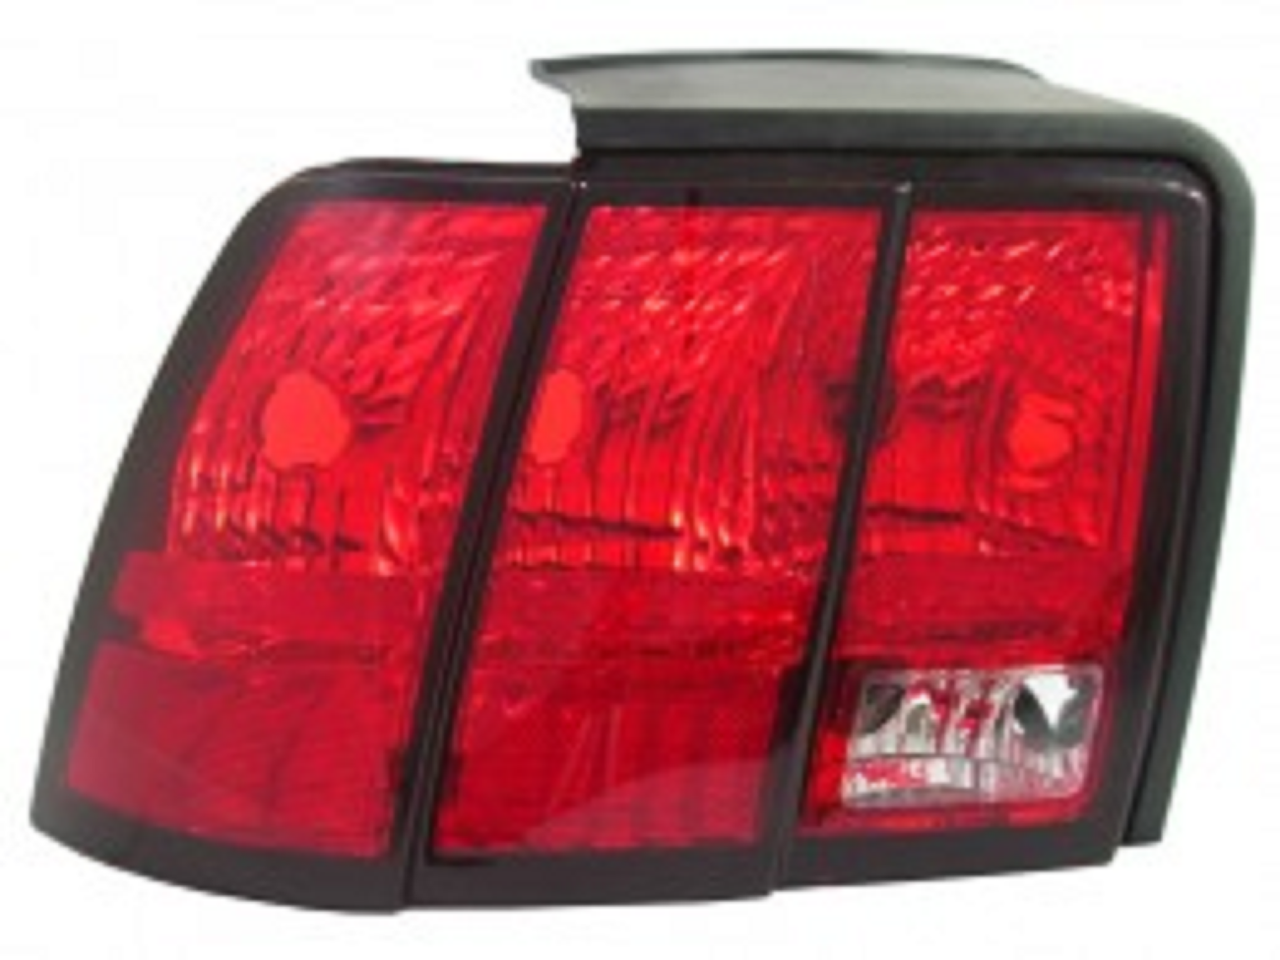 Ford Mustang 1999 2000 2001 2002 2003 2004 tail light left driver